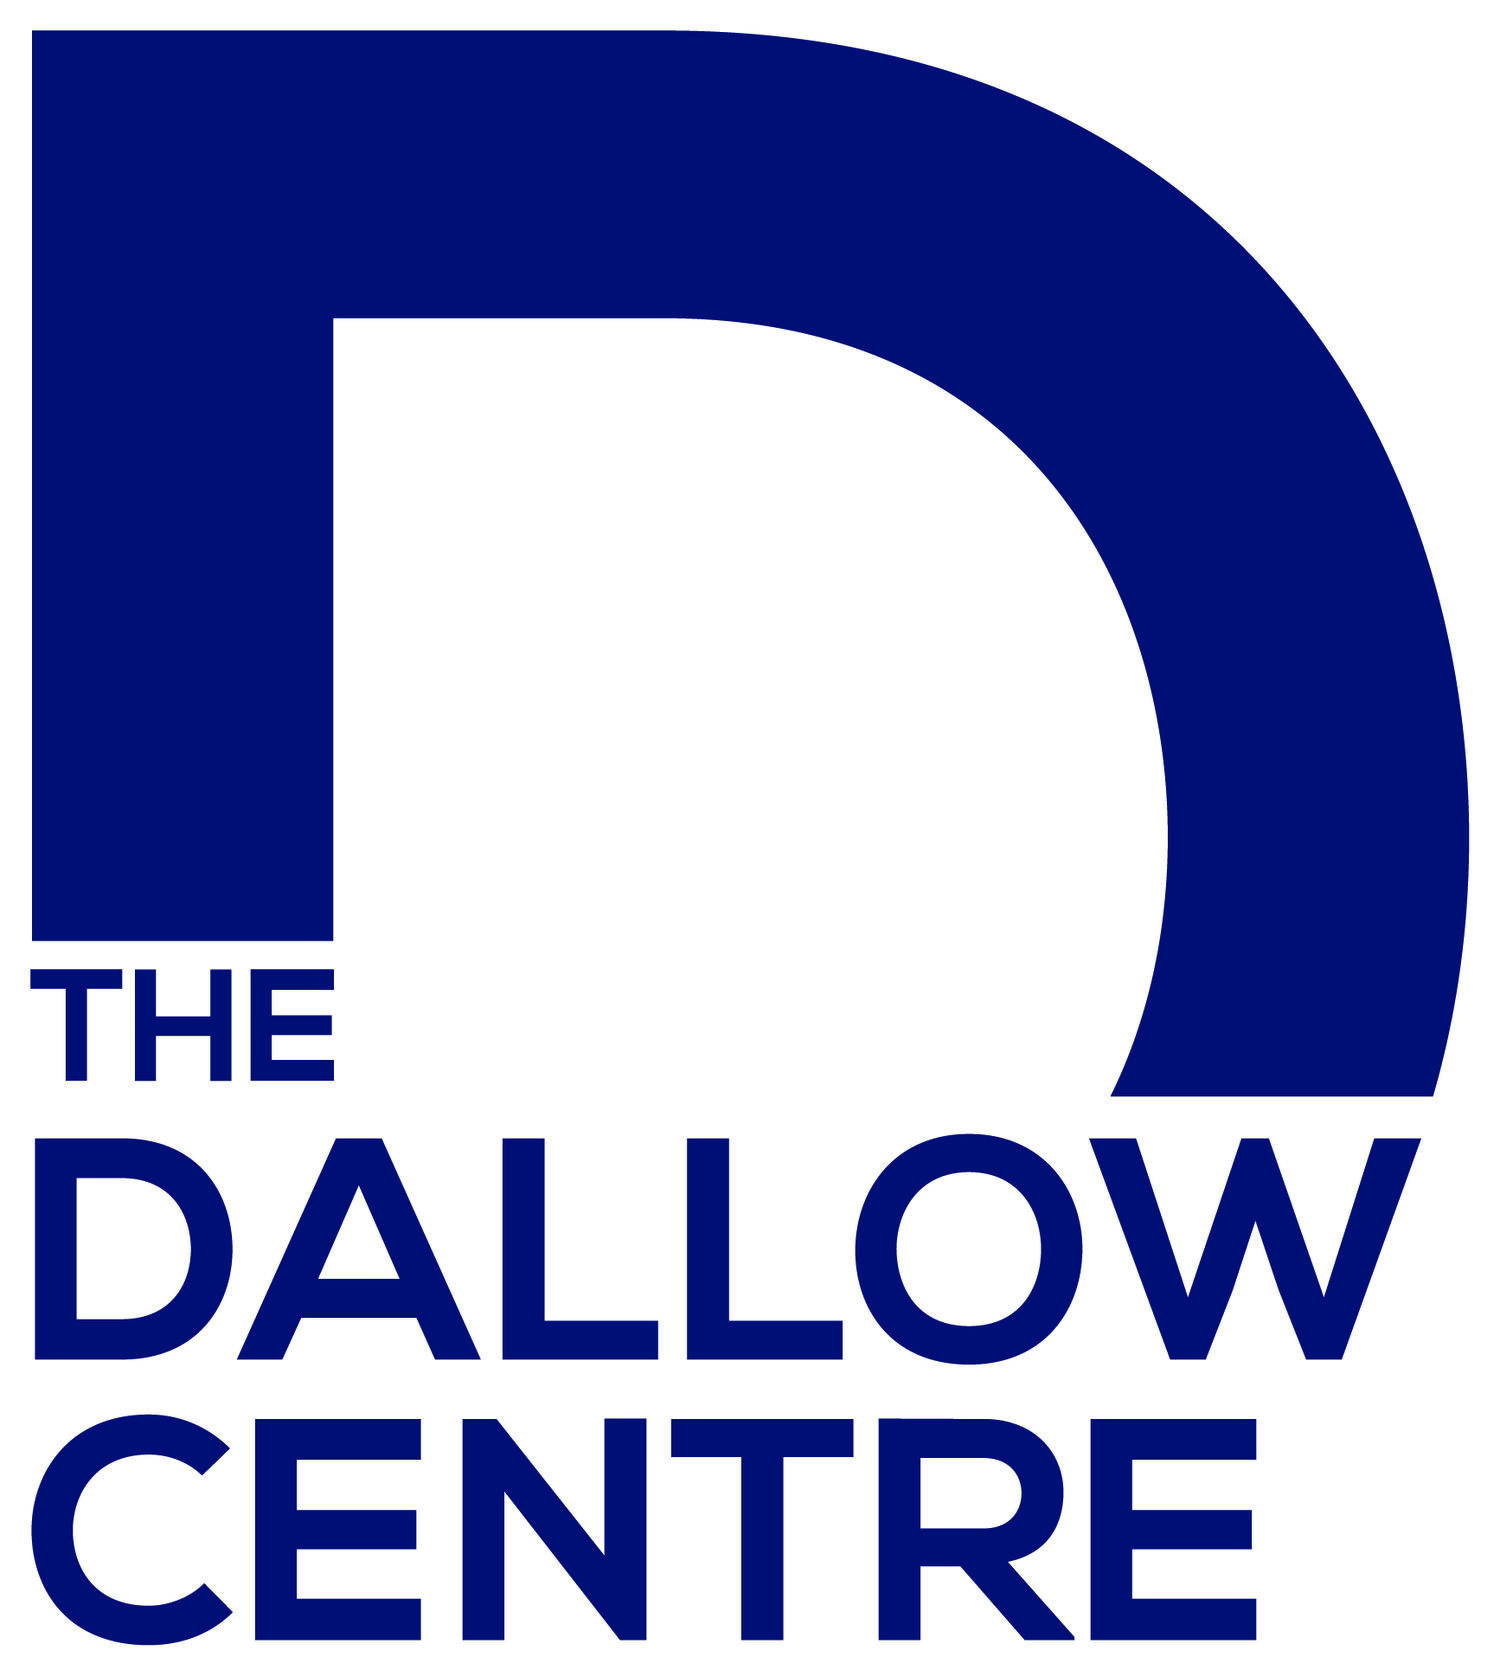 The Dallow Centre